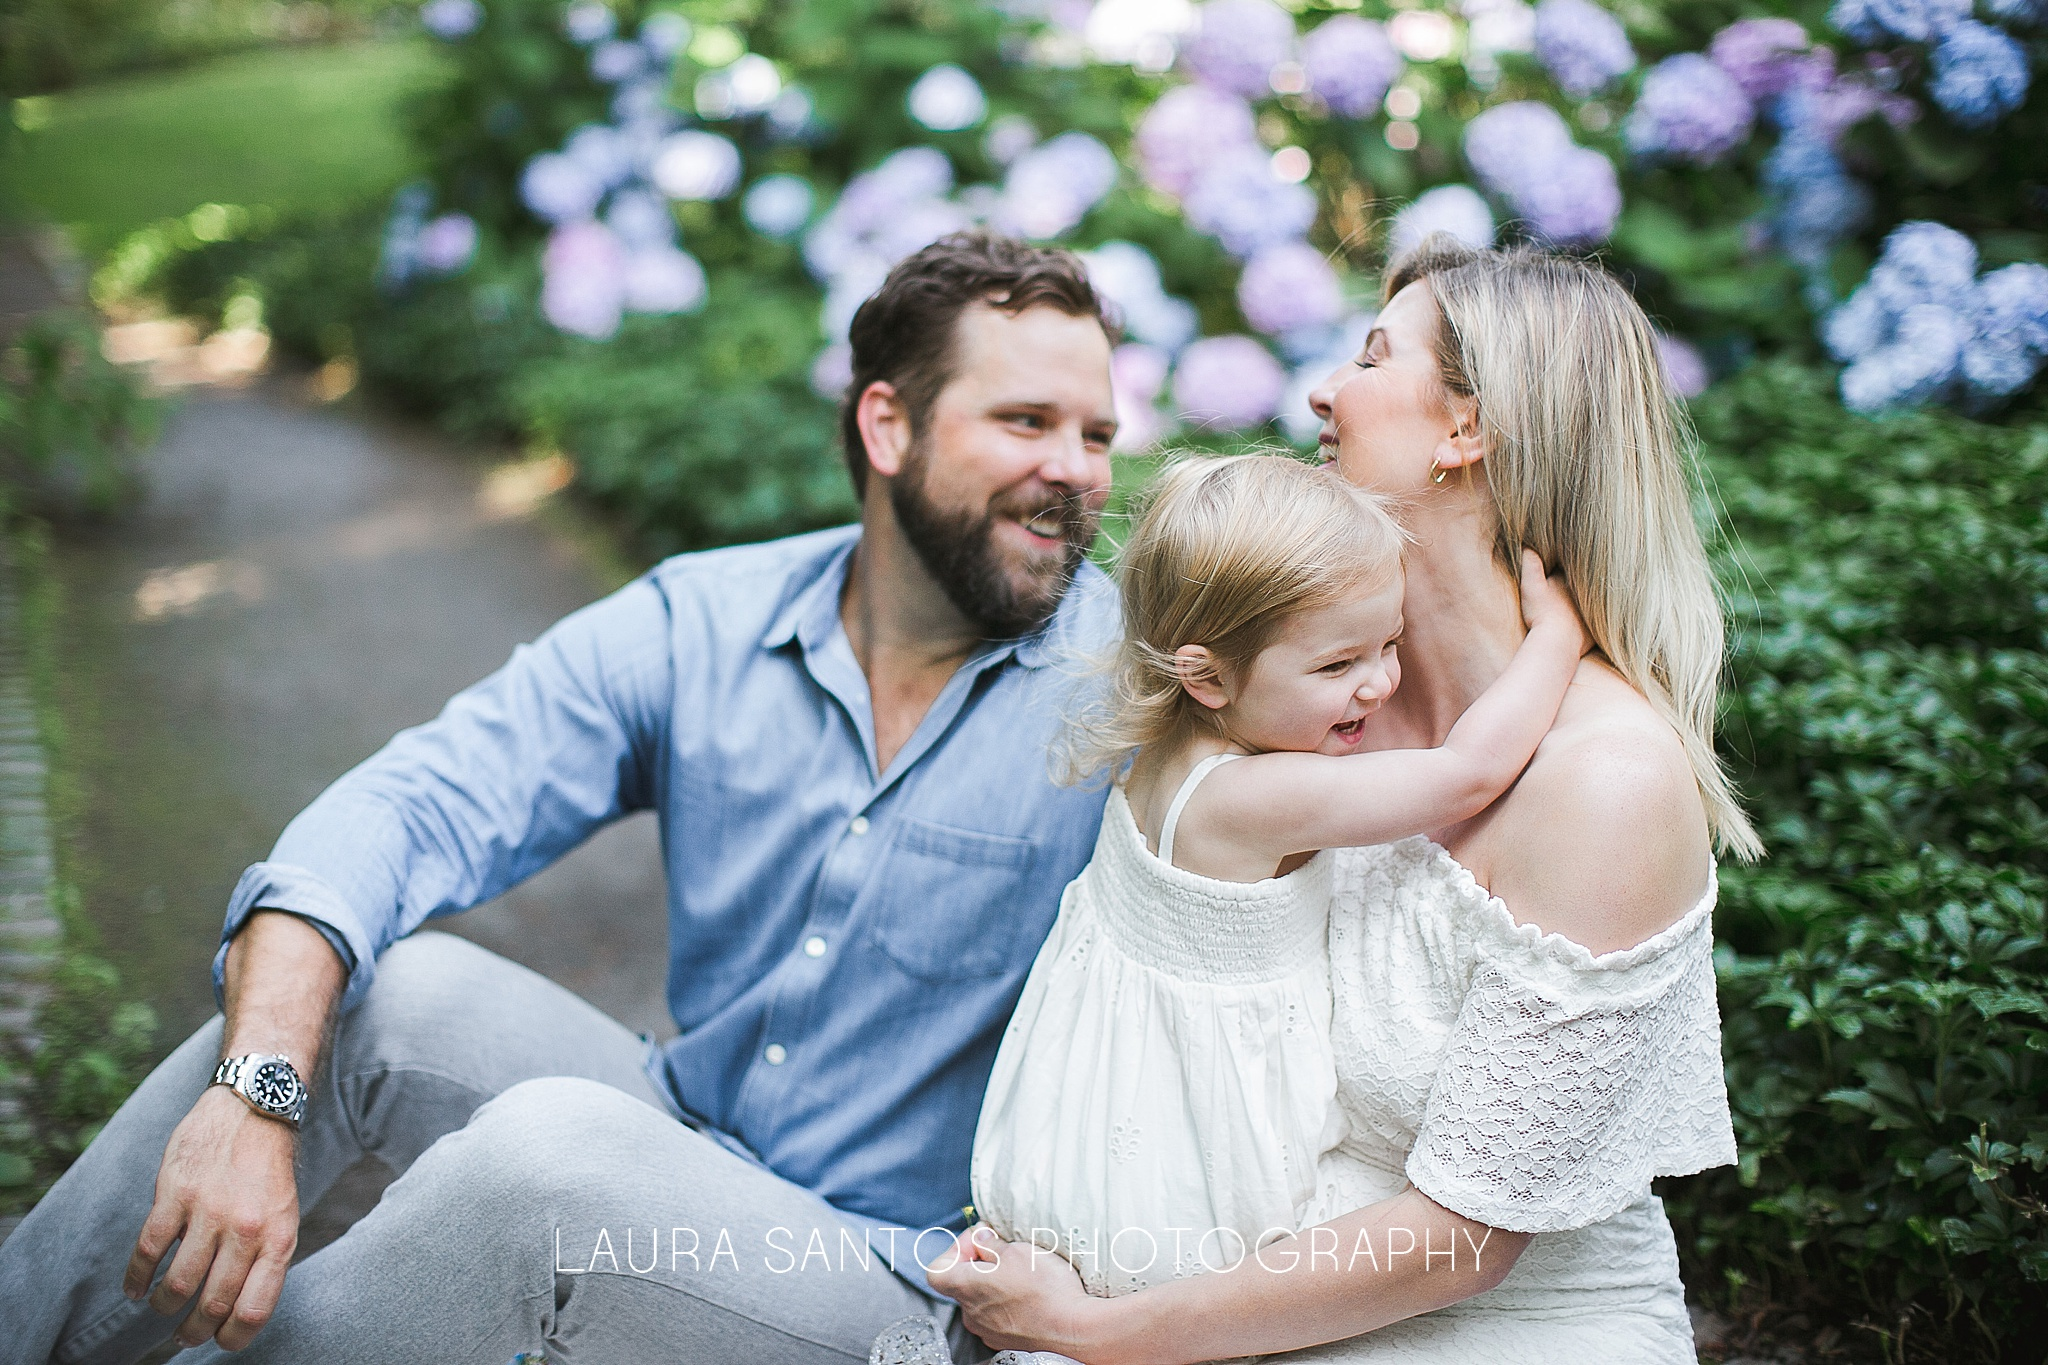 Laura Santos Photography Portland Oregon Family Photographer_1069.jpg